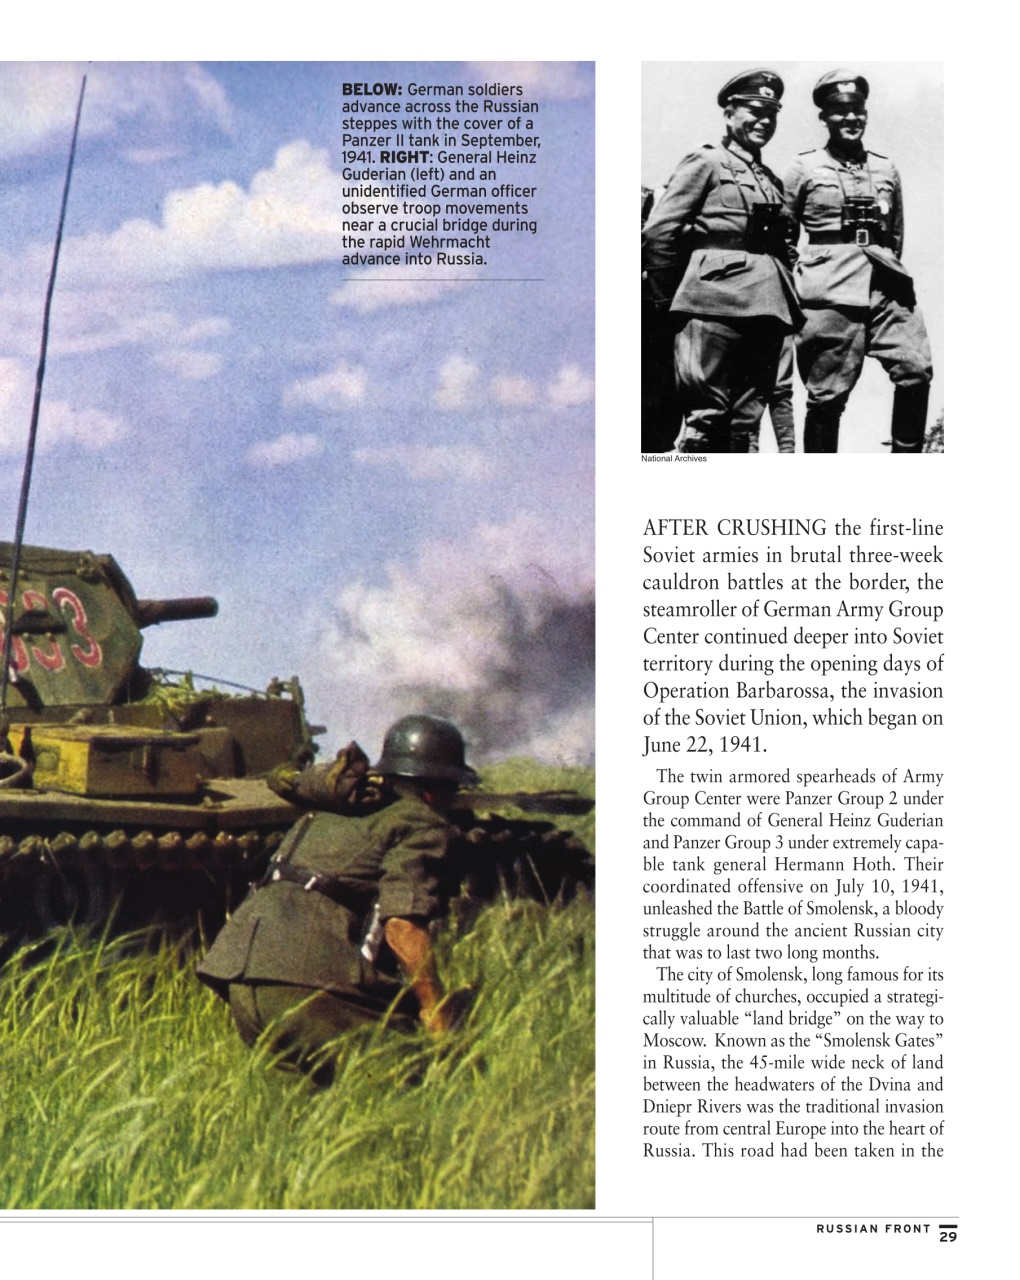 an overview of the operation barbarossa during the wwii invasion of russia World war ii korea vietnam the failure of operation barbarossa the failure of he german invasion of yugoslavia and greece during april and may.